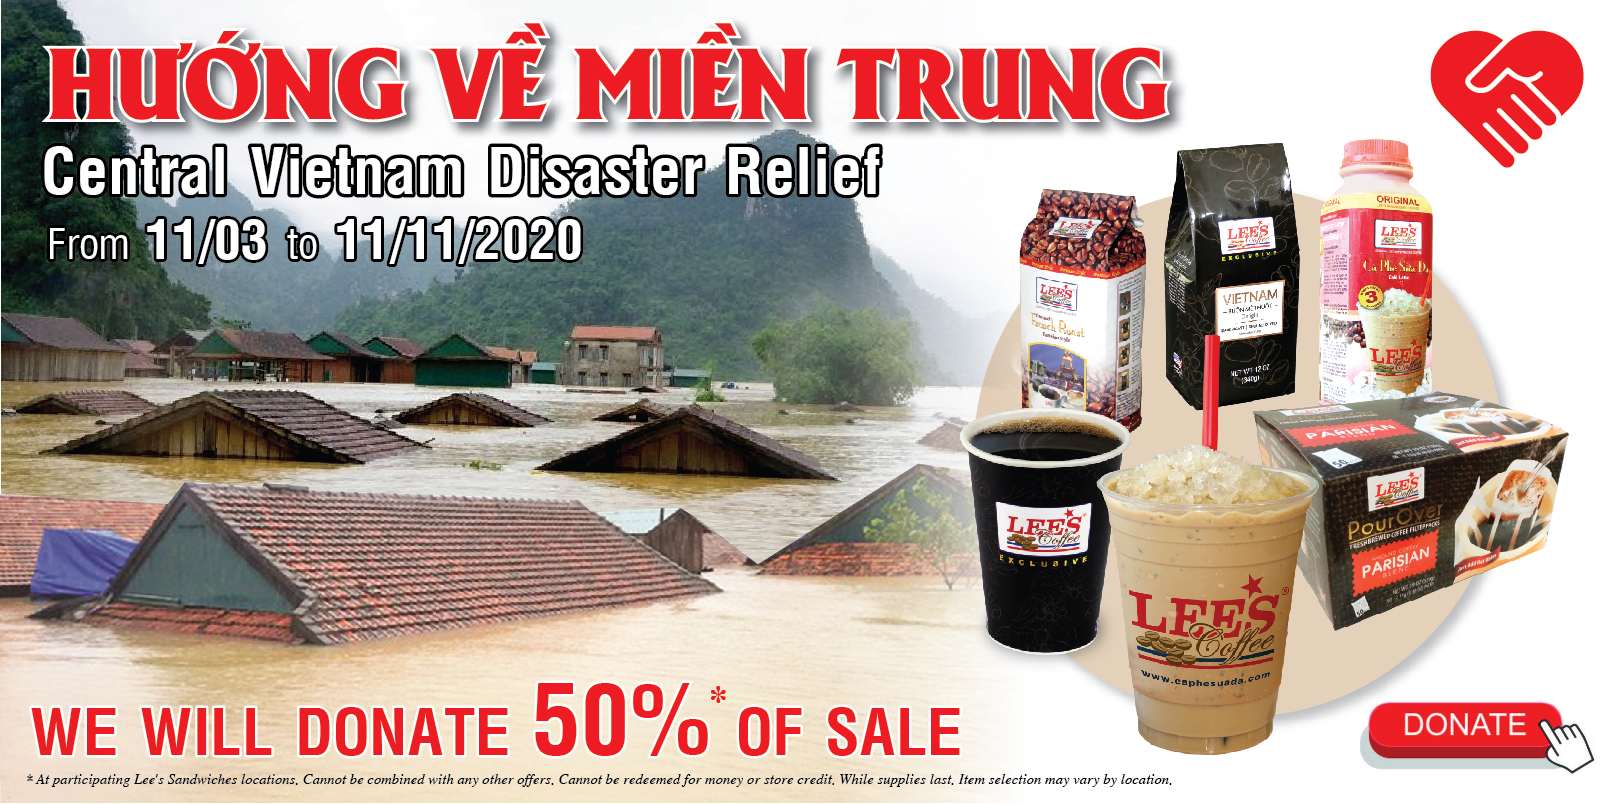 Central Vietnam Disaster Relief